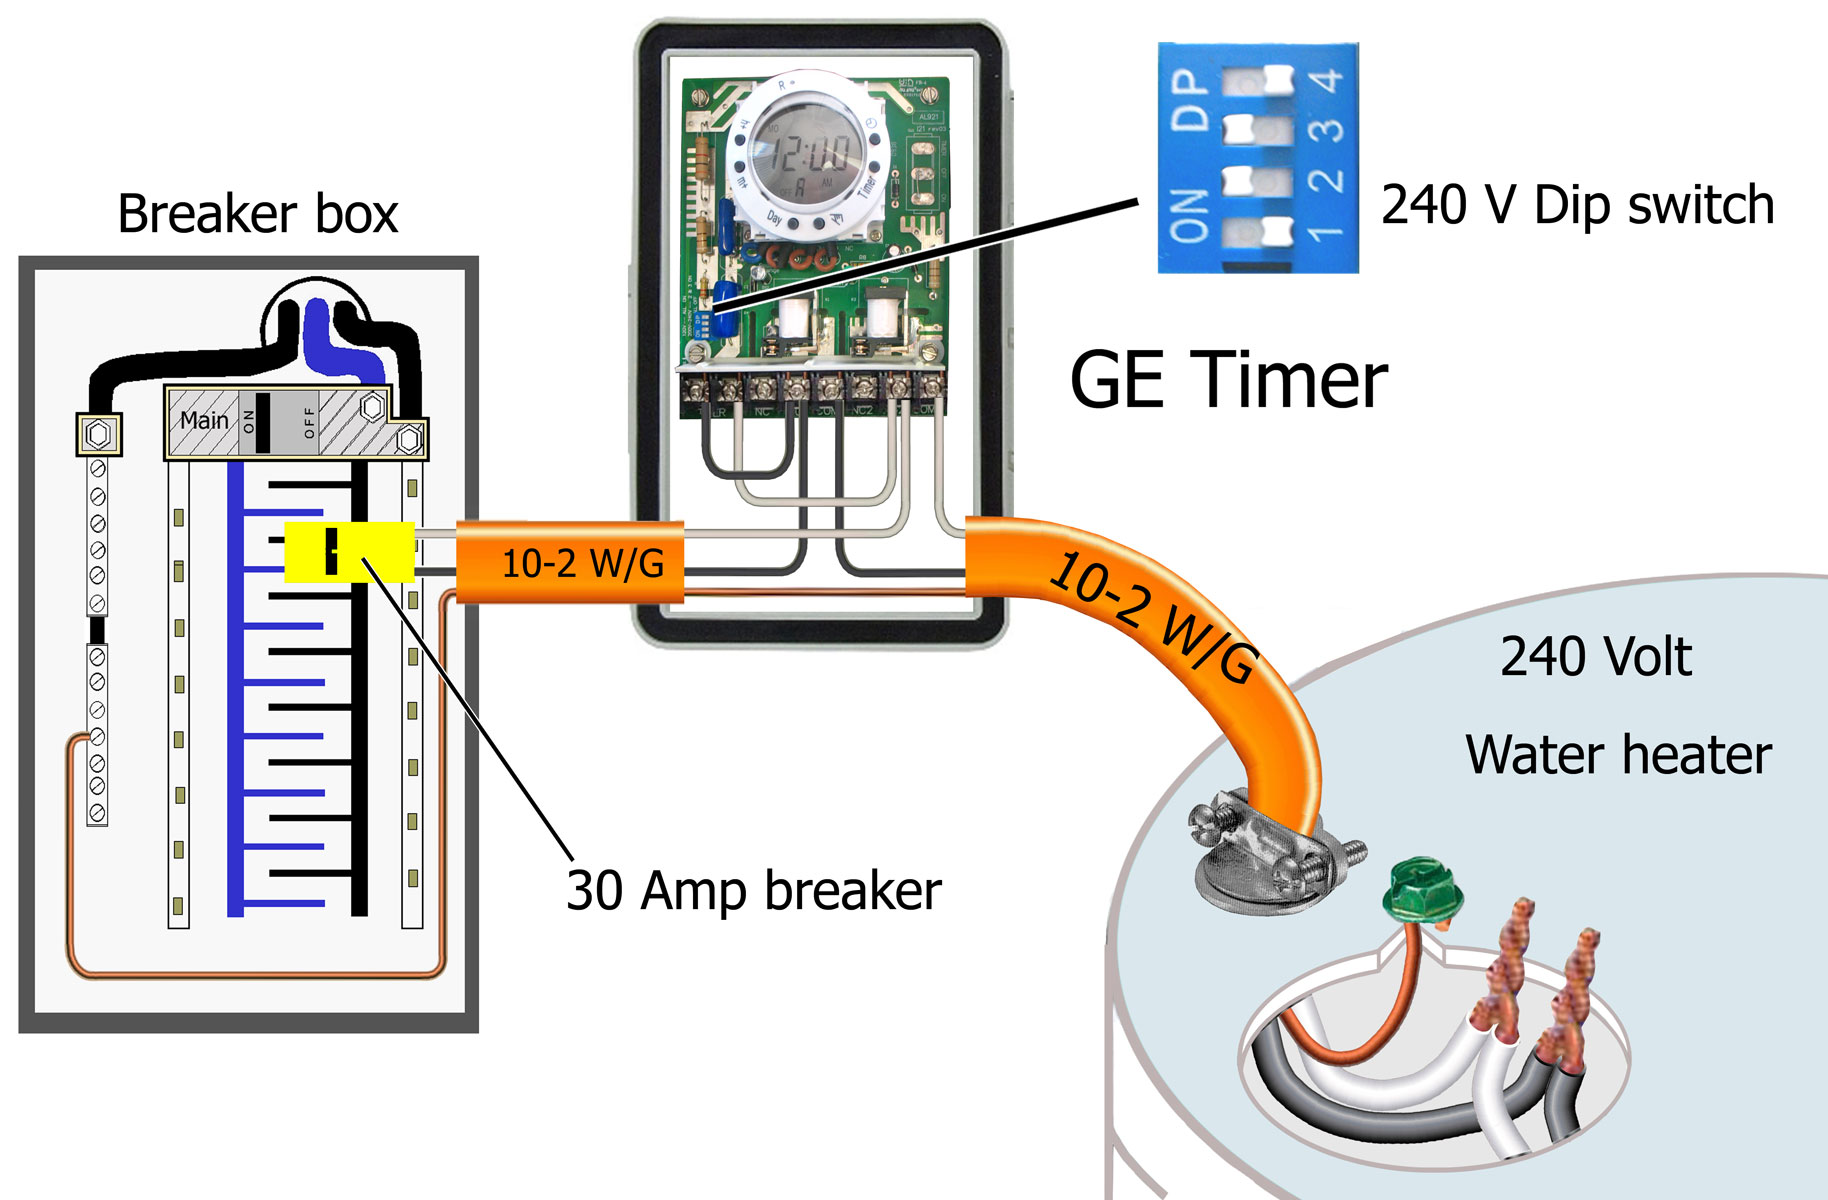 GE to water heater 500a how to wire ge 15136 timer water heater wiring diagram at suagrazia.org